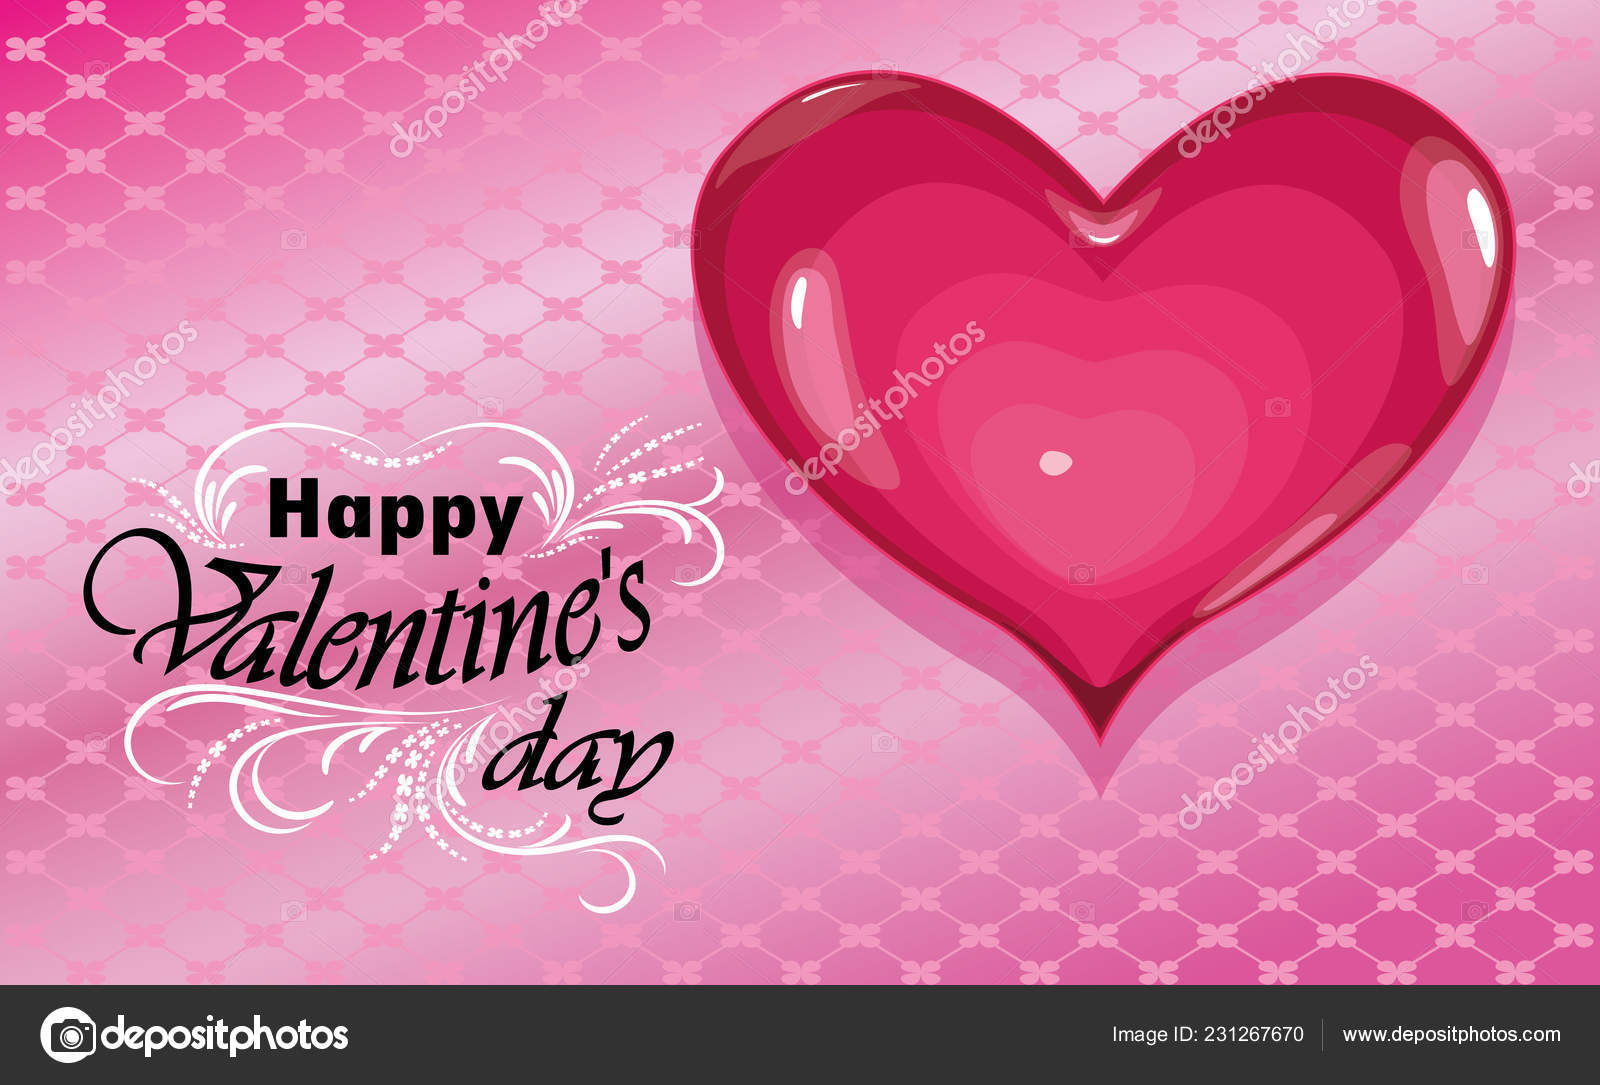 Happy Valentines Day Love Heart On Pink Background Vector